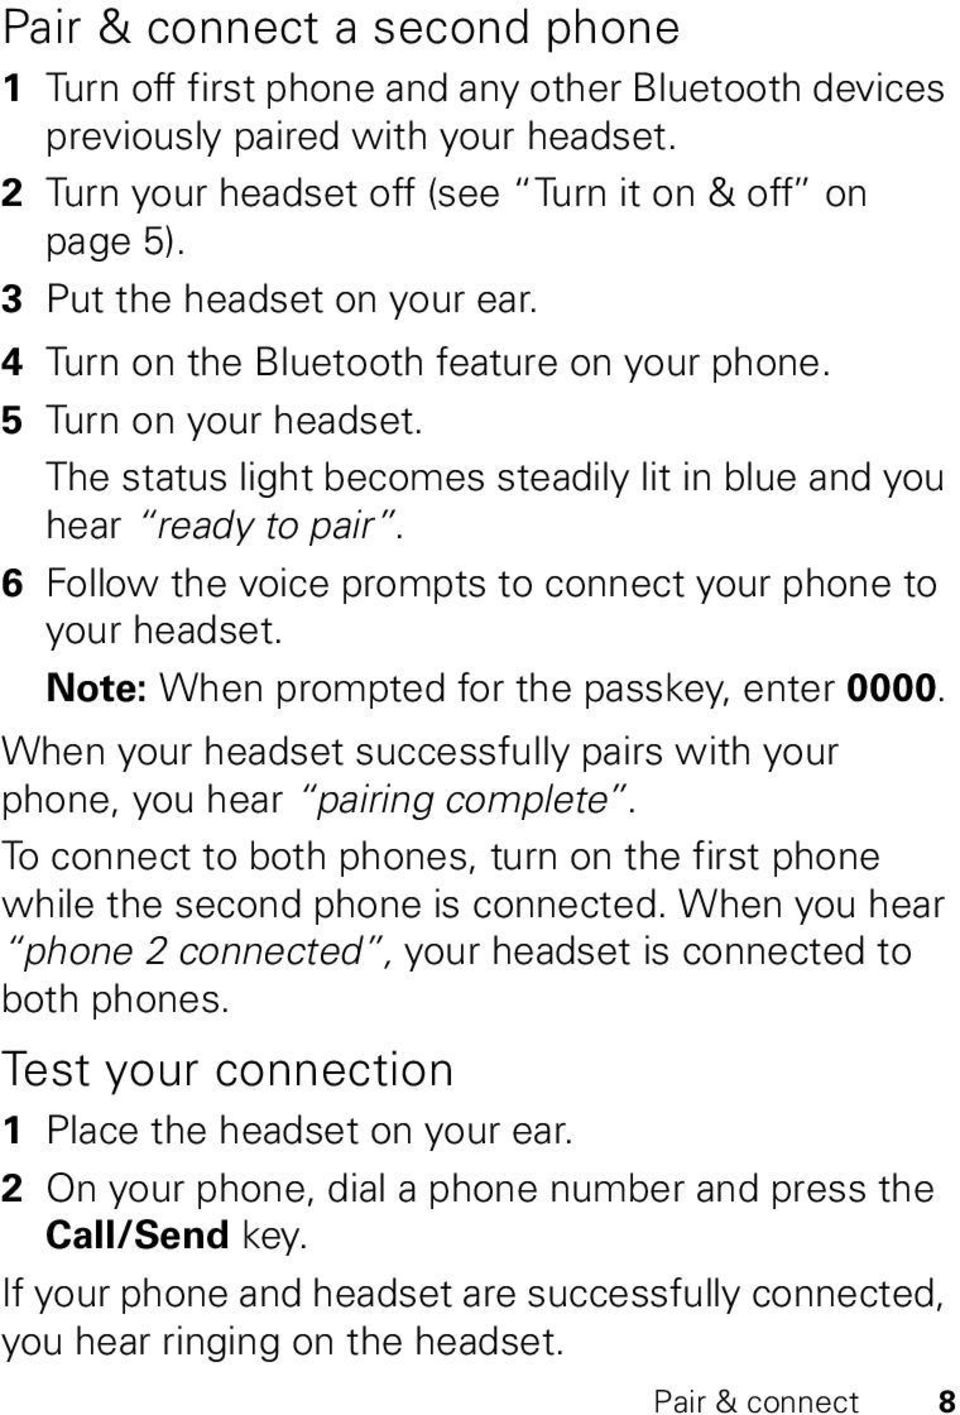 6 Follow the voice prompts to connect your phone to your headset. Note: When prompted for the passkey, enter 0000. When your headset successfully pairs with your phone, you hear pairing complete.